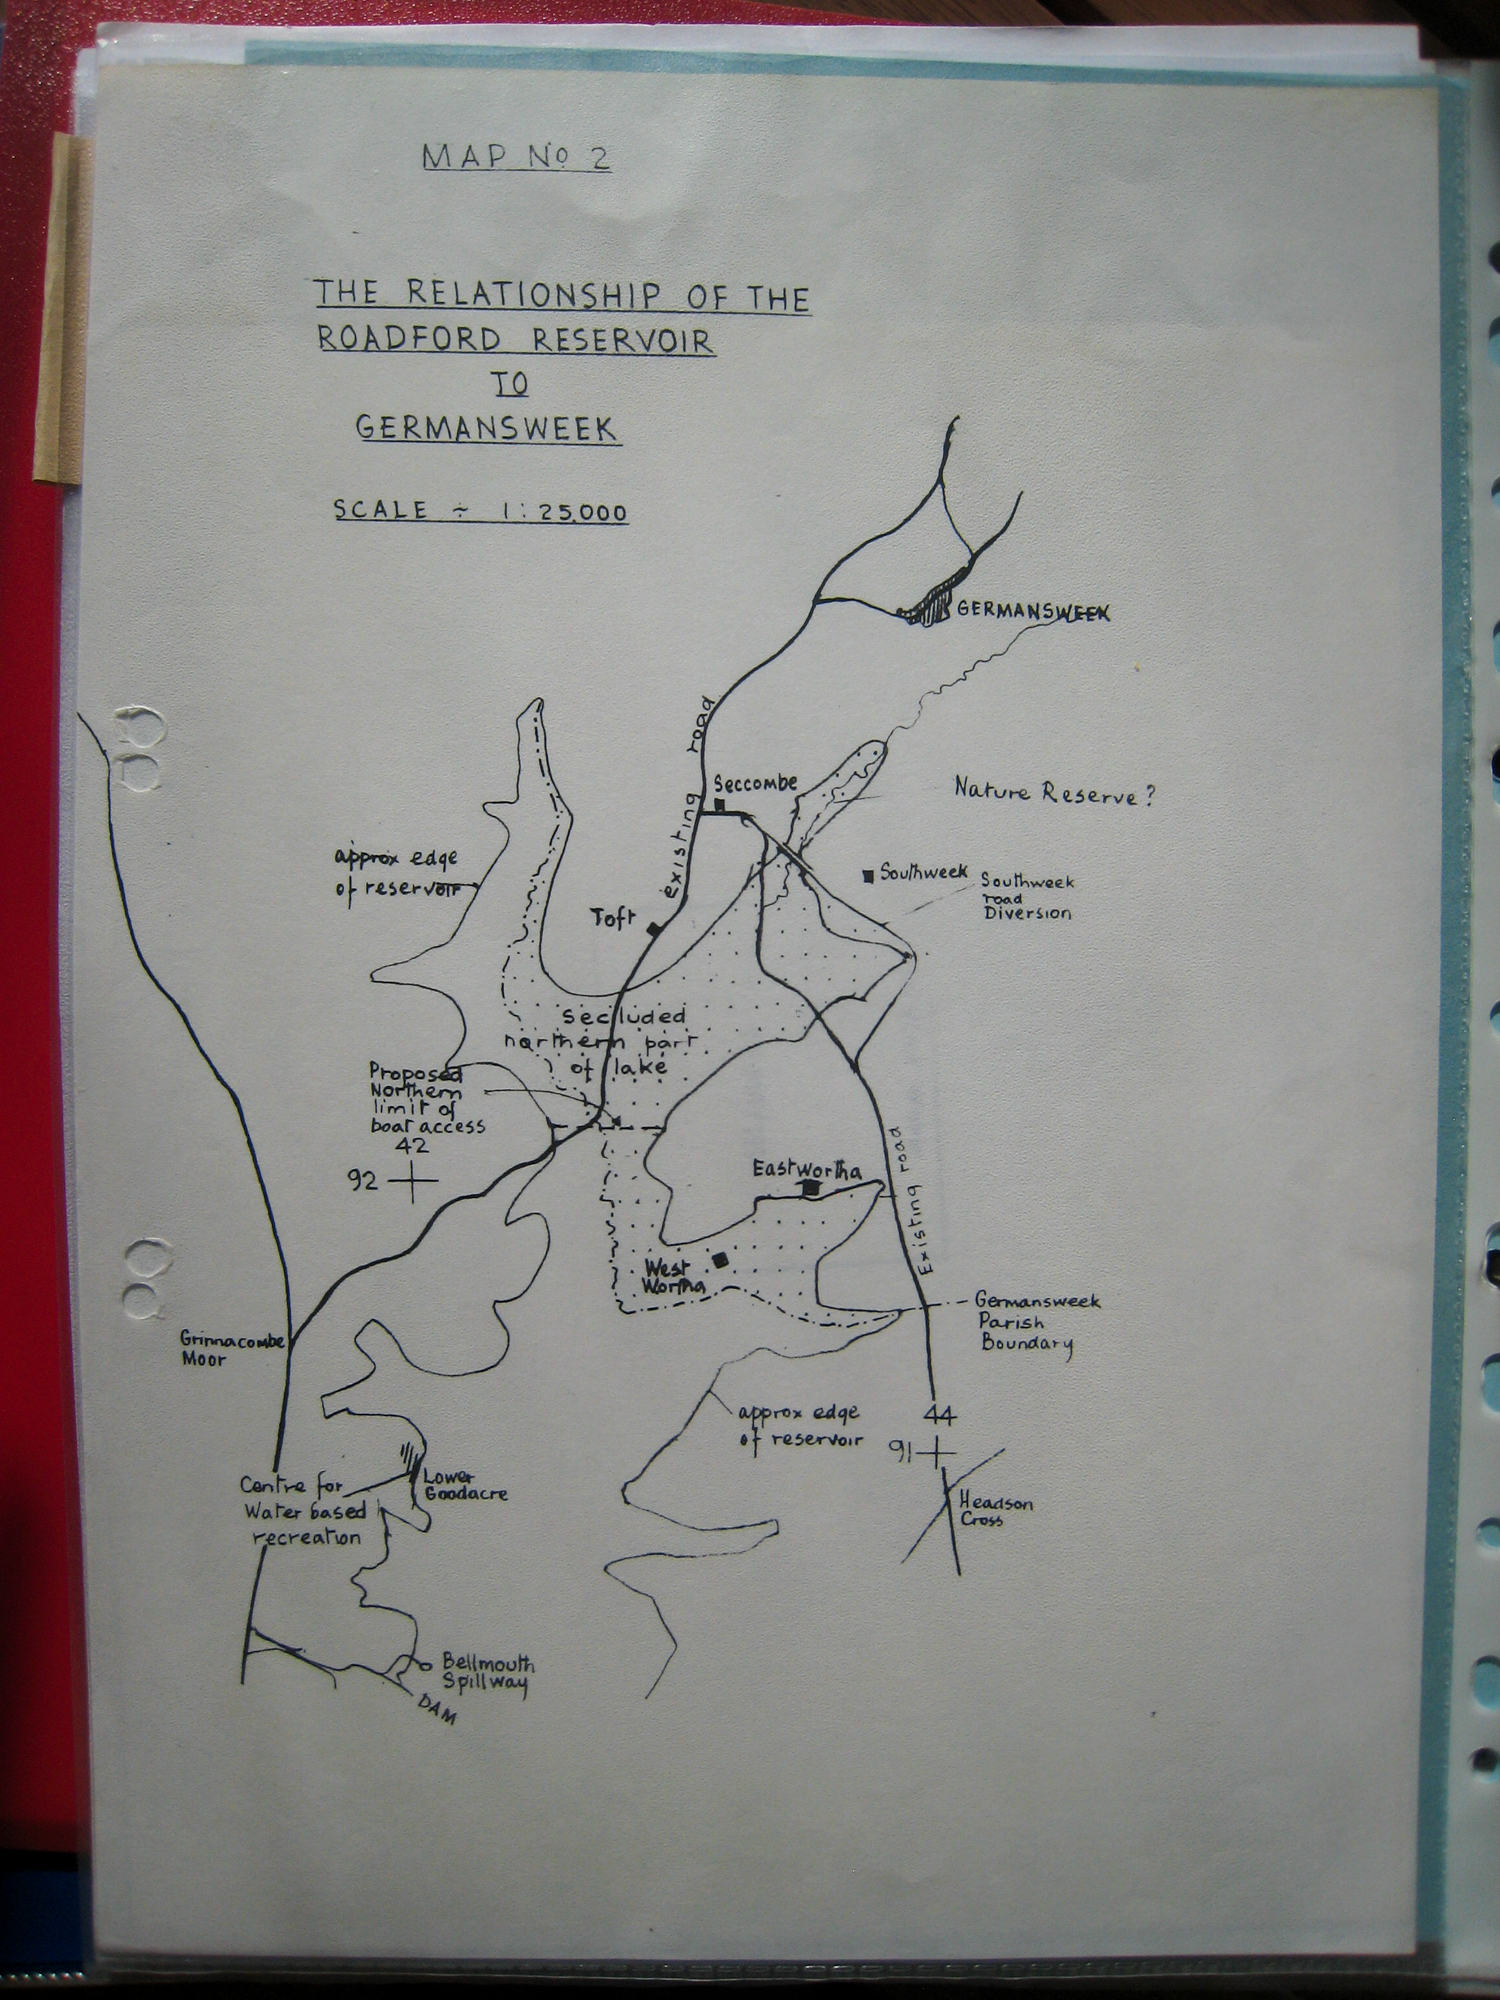 Modern map of the Roadford and Germansweek area